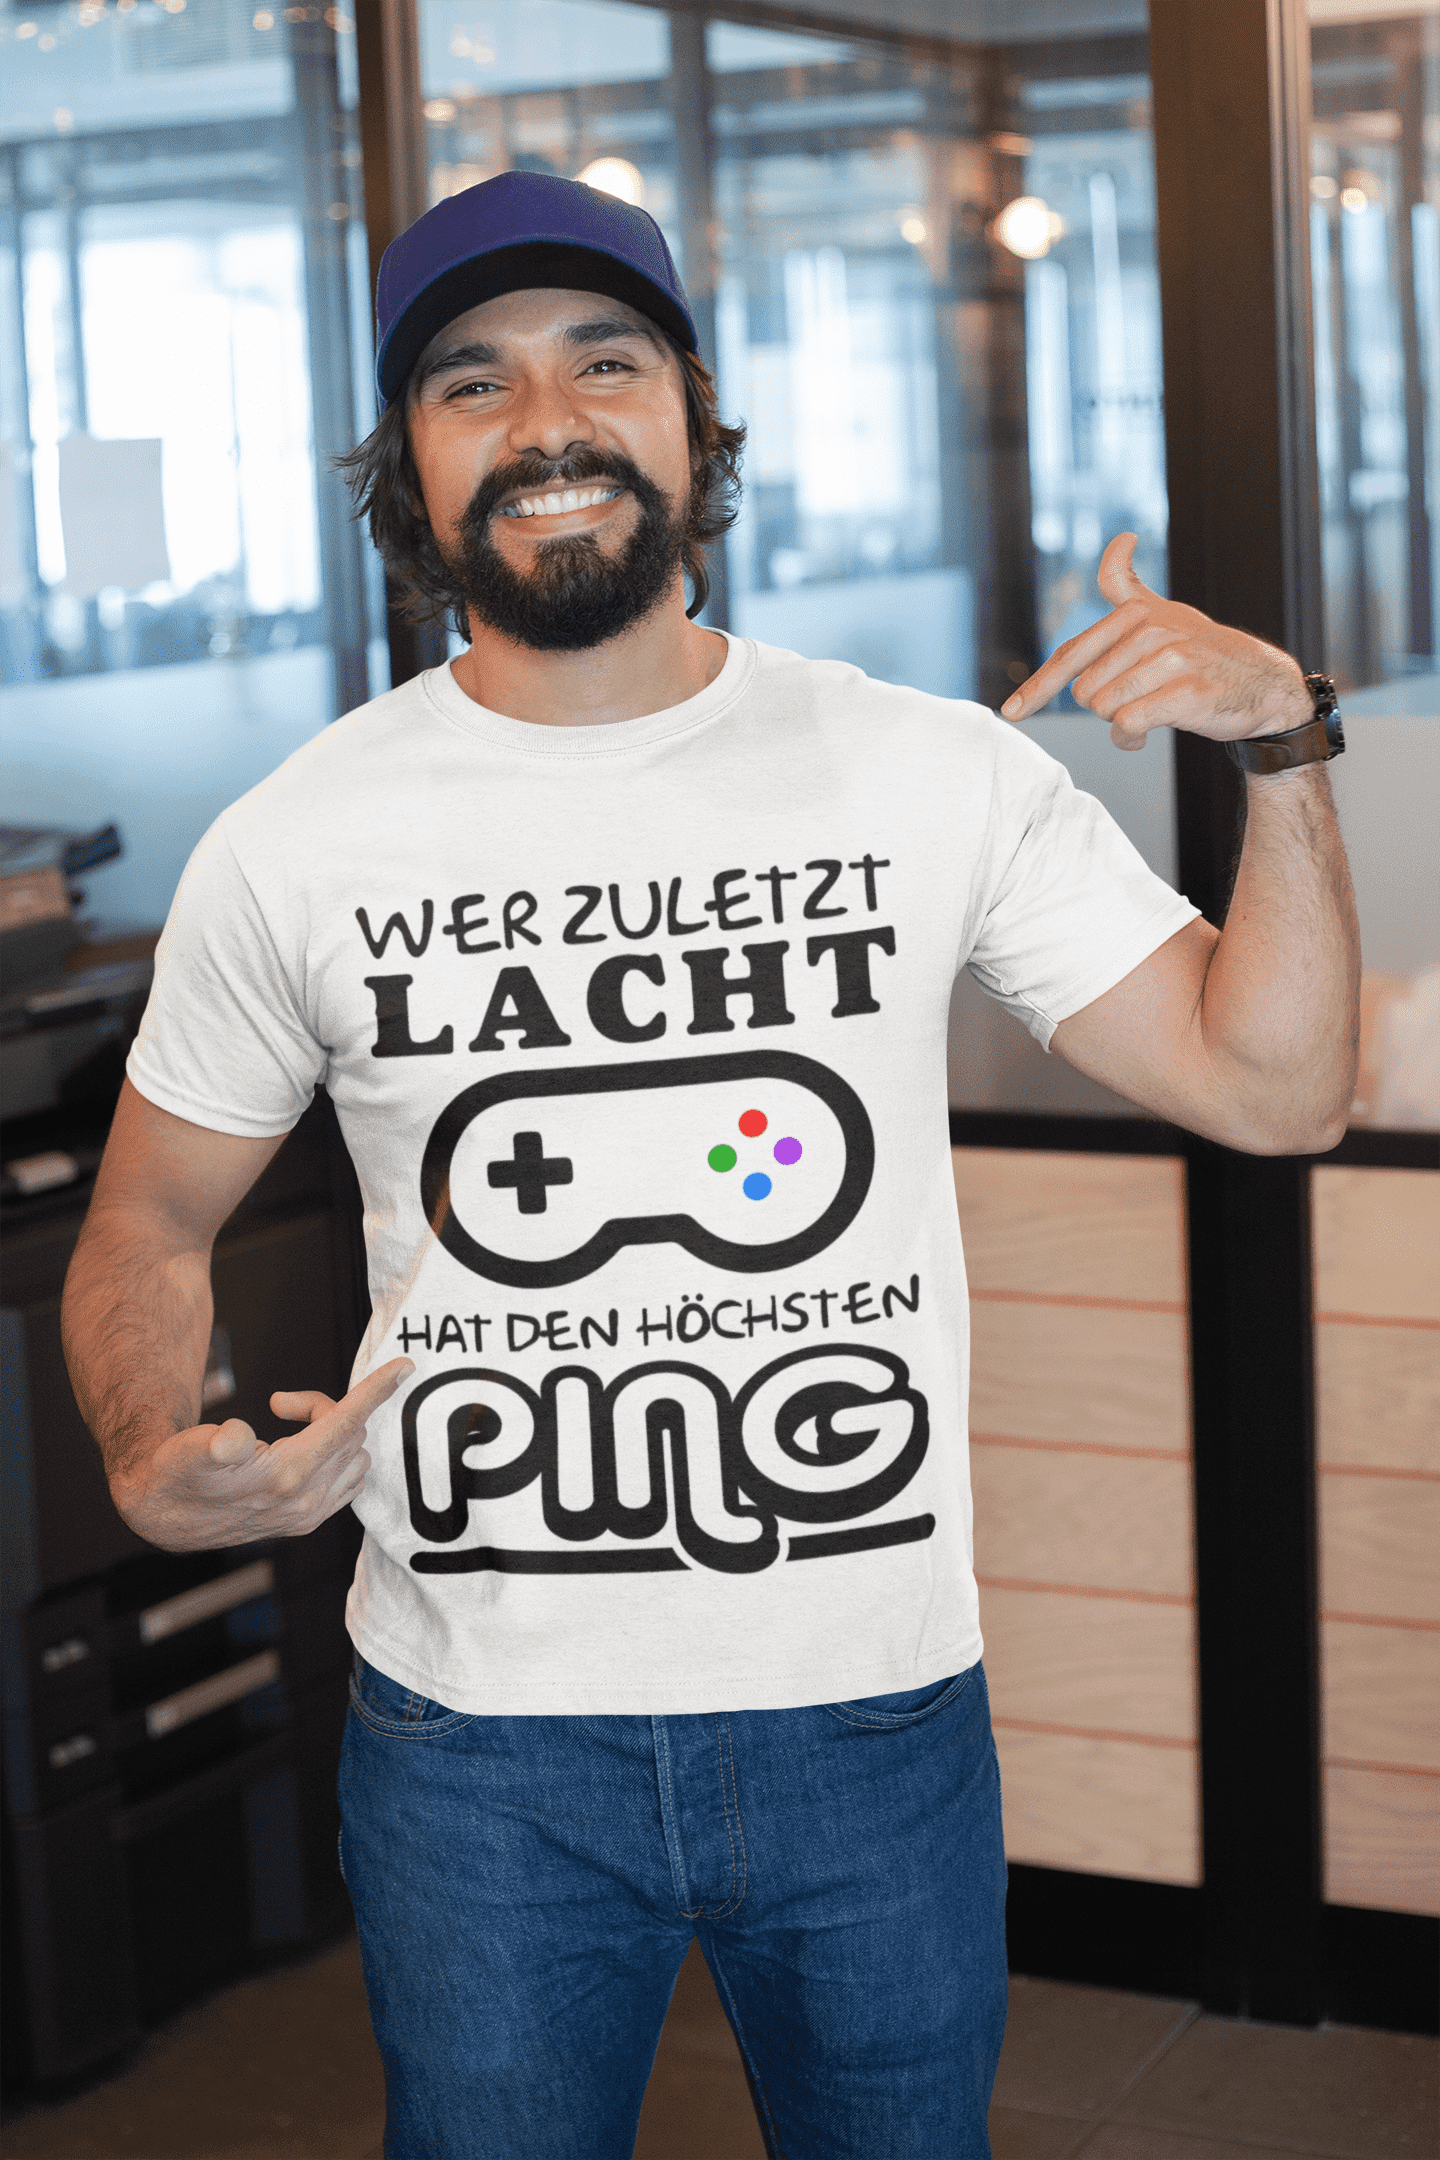 Gameristic| Wer zuletzt Lacht... - Gaming Shirts - Gaming Merch - Gamer Shirt - esport - Gamer - Gaming - Videospiele - Zocken - Gameristic